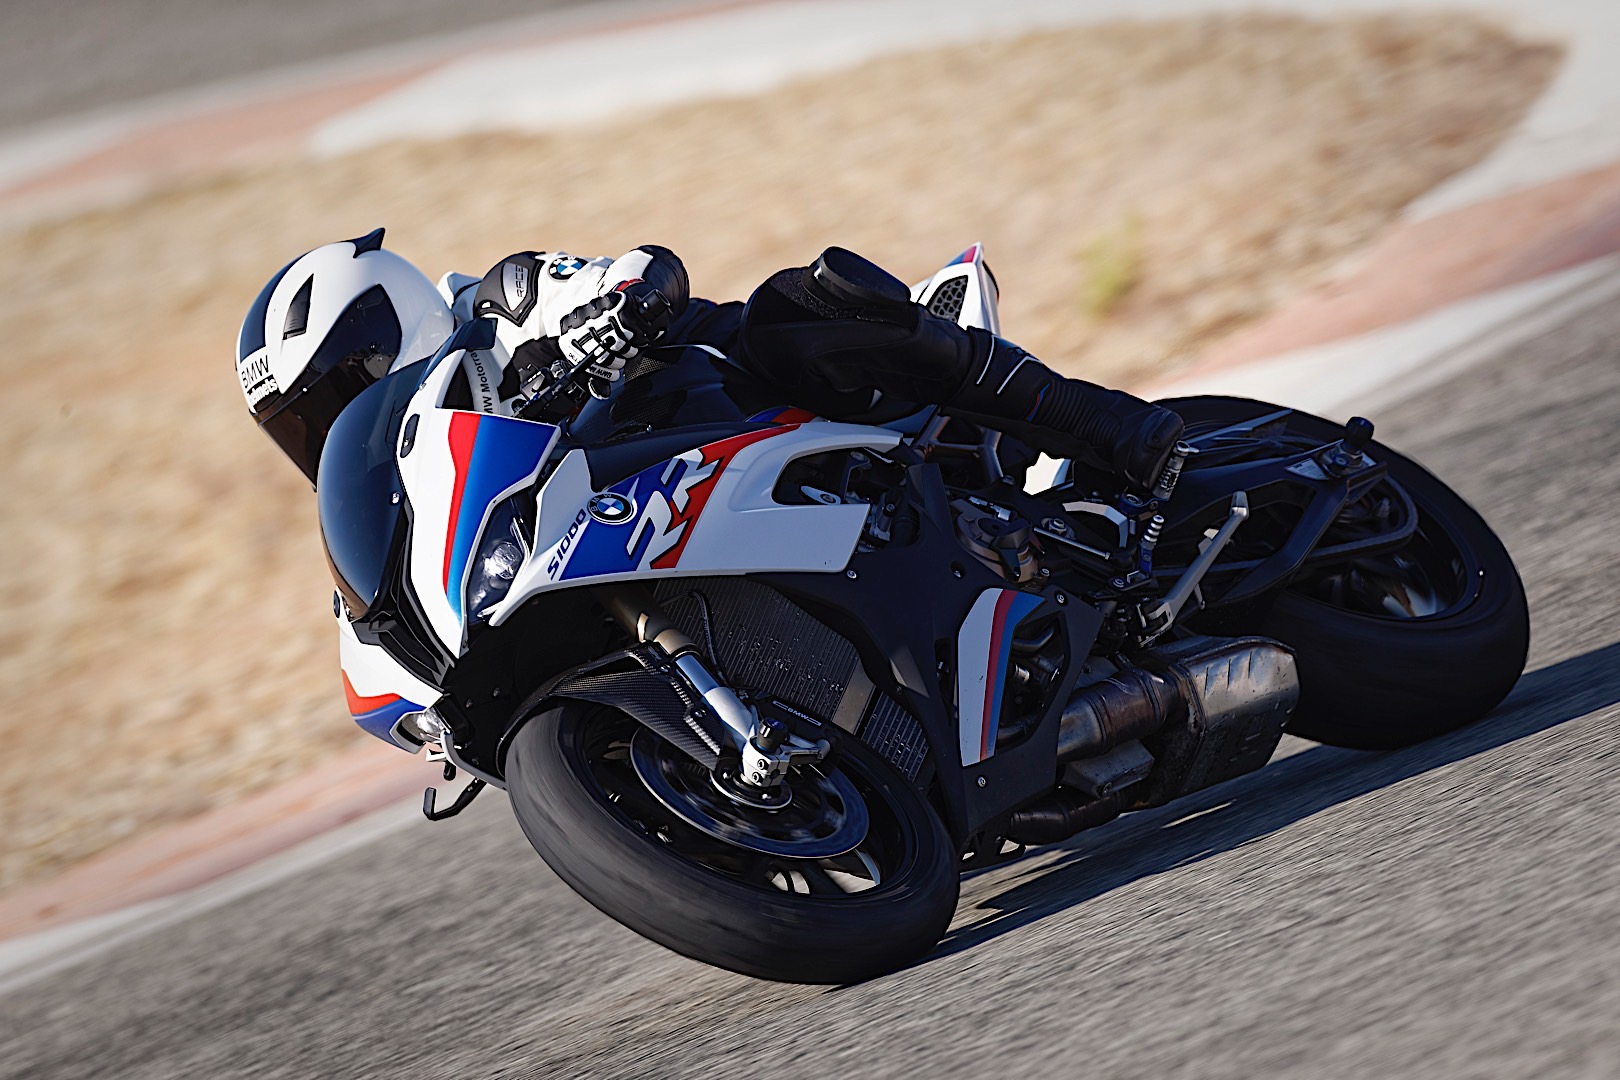 2019 BMW S 1000 RR P90327349 highRes